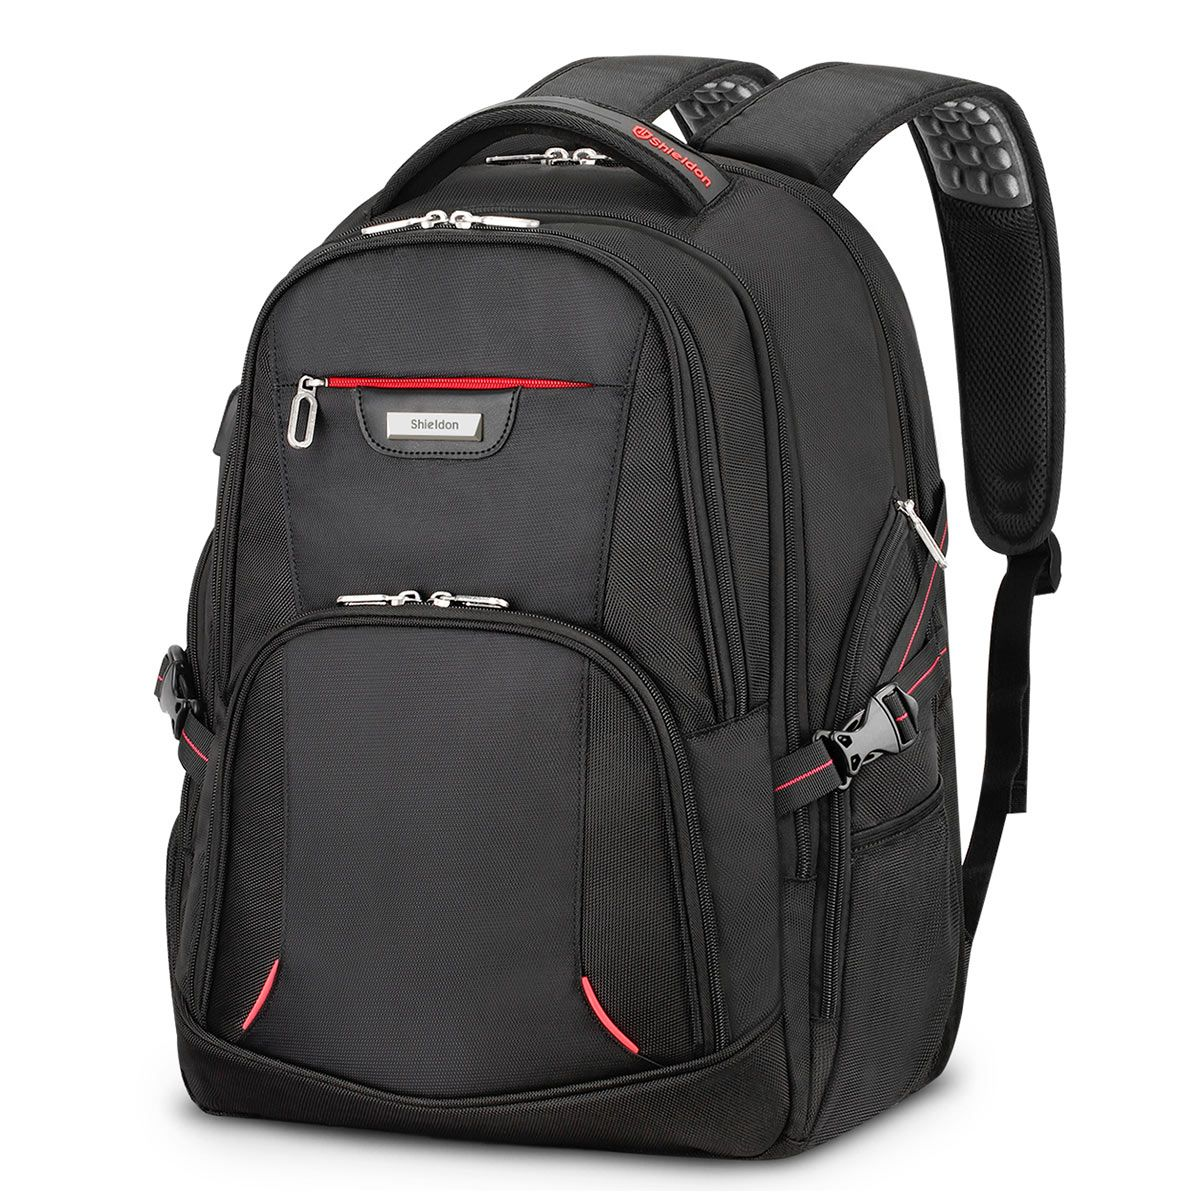 Laptop,Notebook,Travel School Bag Anti-theft backpack With USB Charging Port